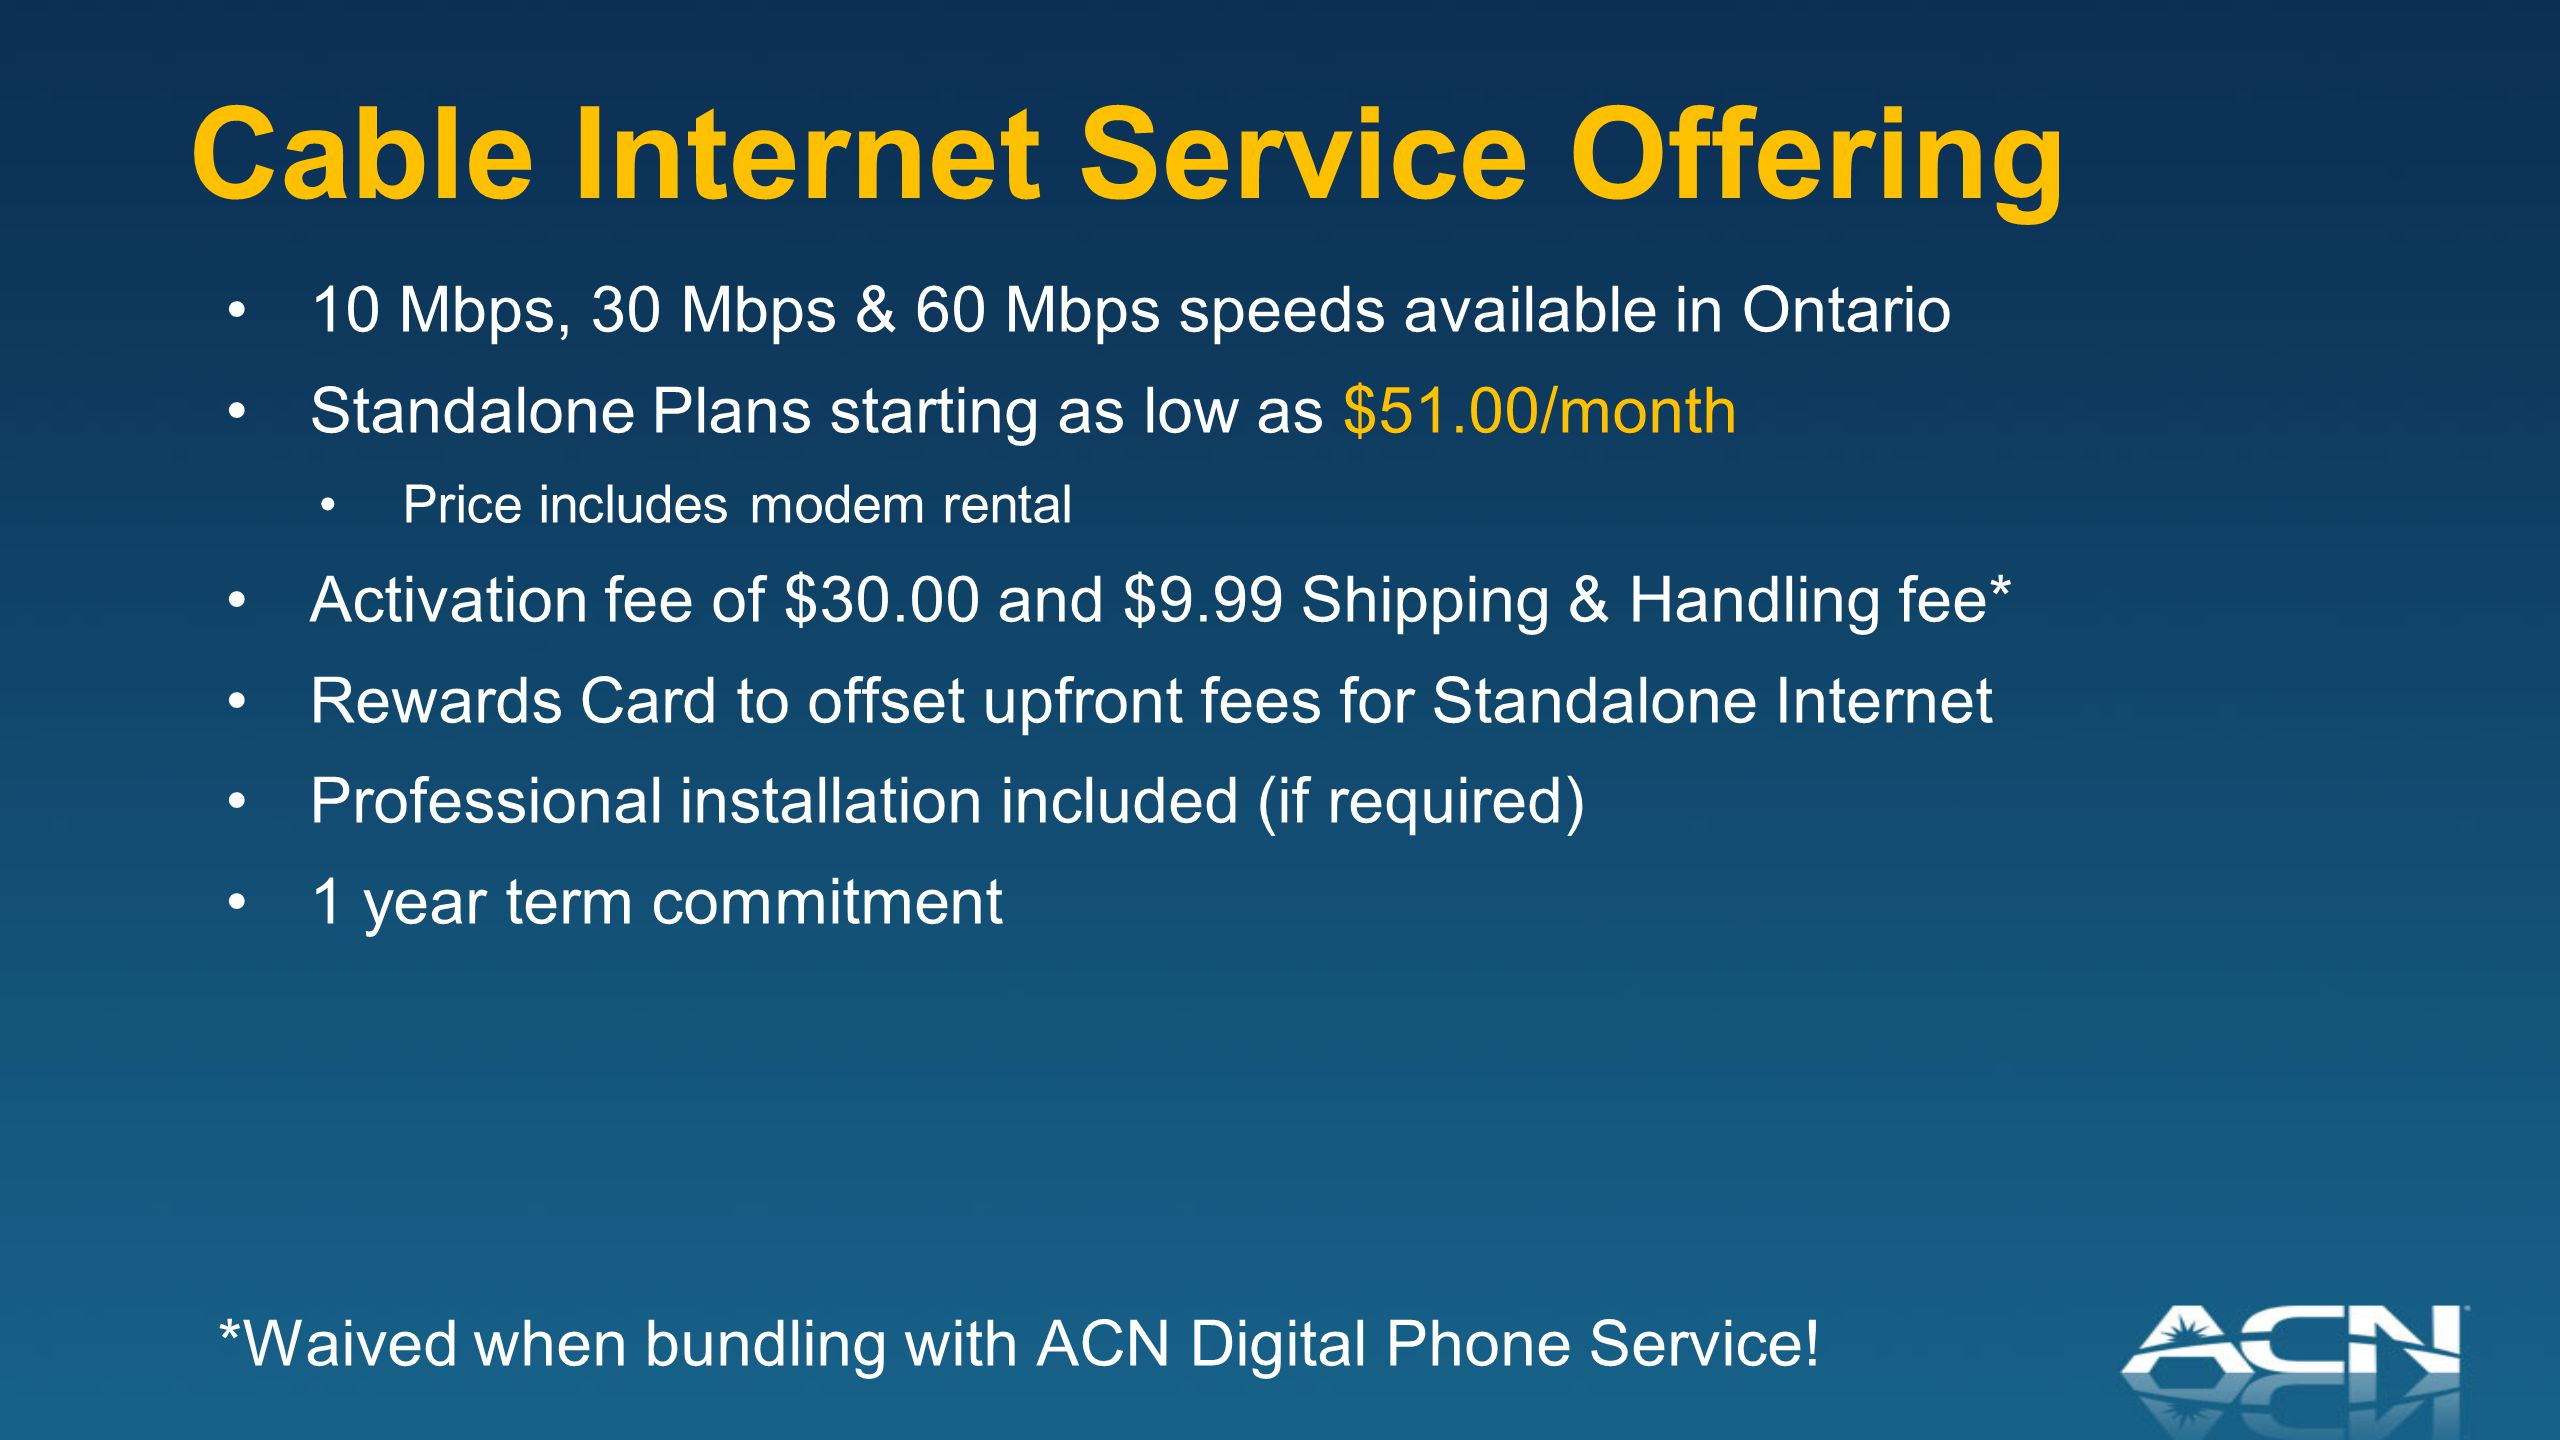 New Customer Orders (VoIP) If bundling Internet with Digital Phone Service, Customer will be asked to review ACN's DPS Terms and Conditions and indicate that they accept by checking off the boxes shown below